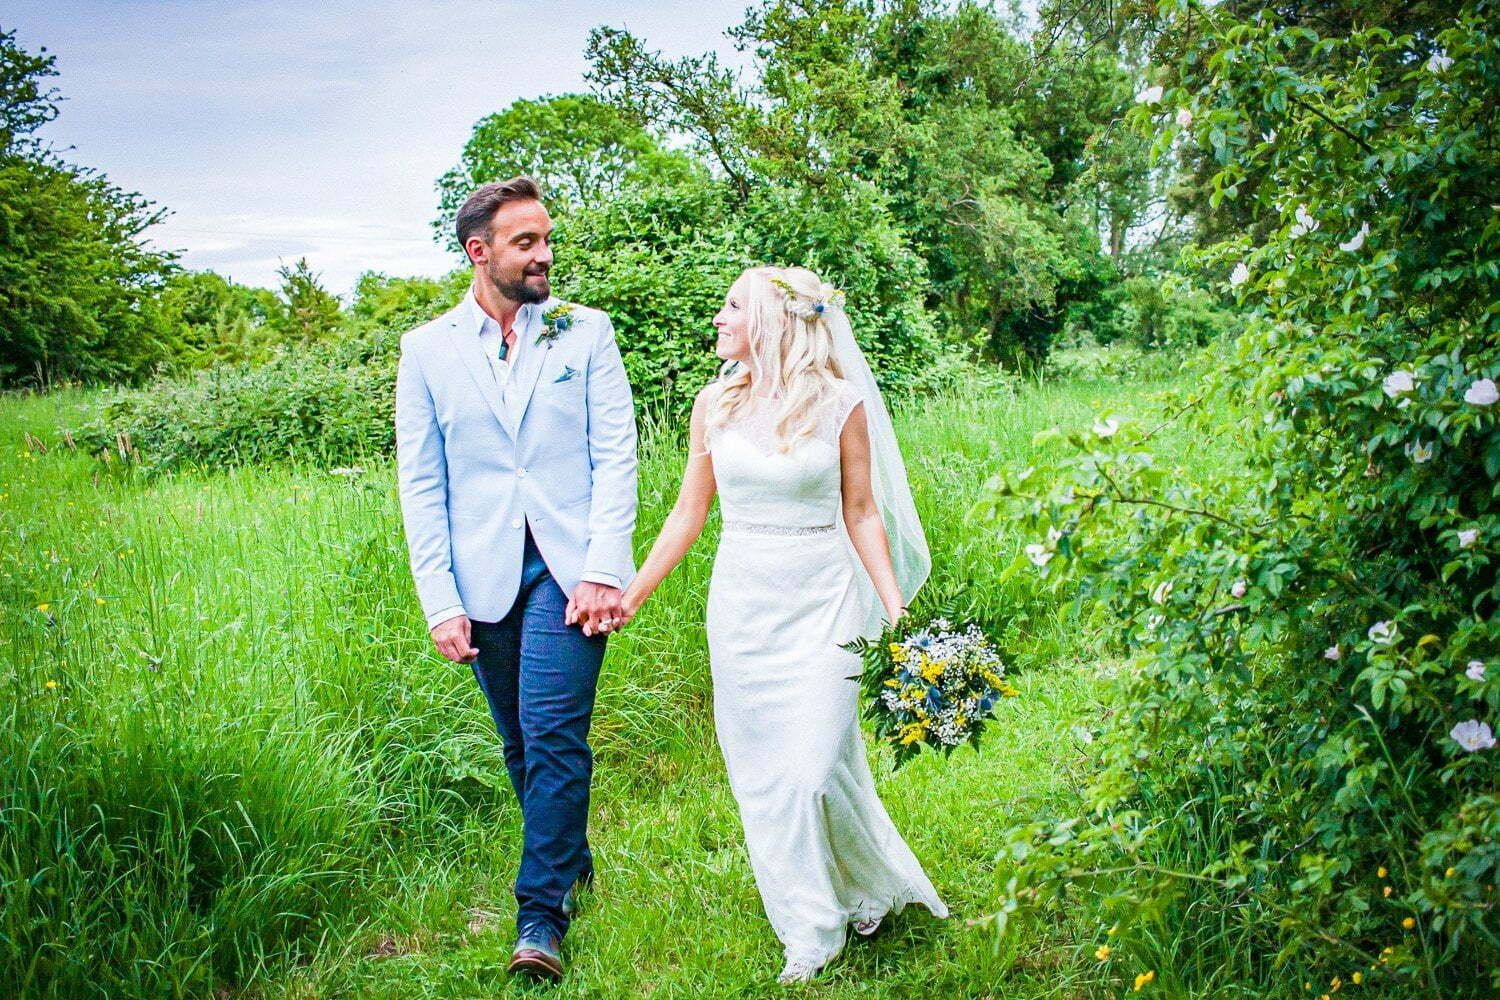 gloucester garden wedding SJ 261